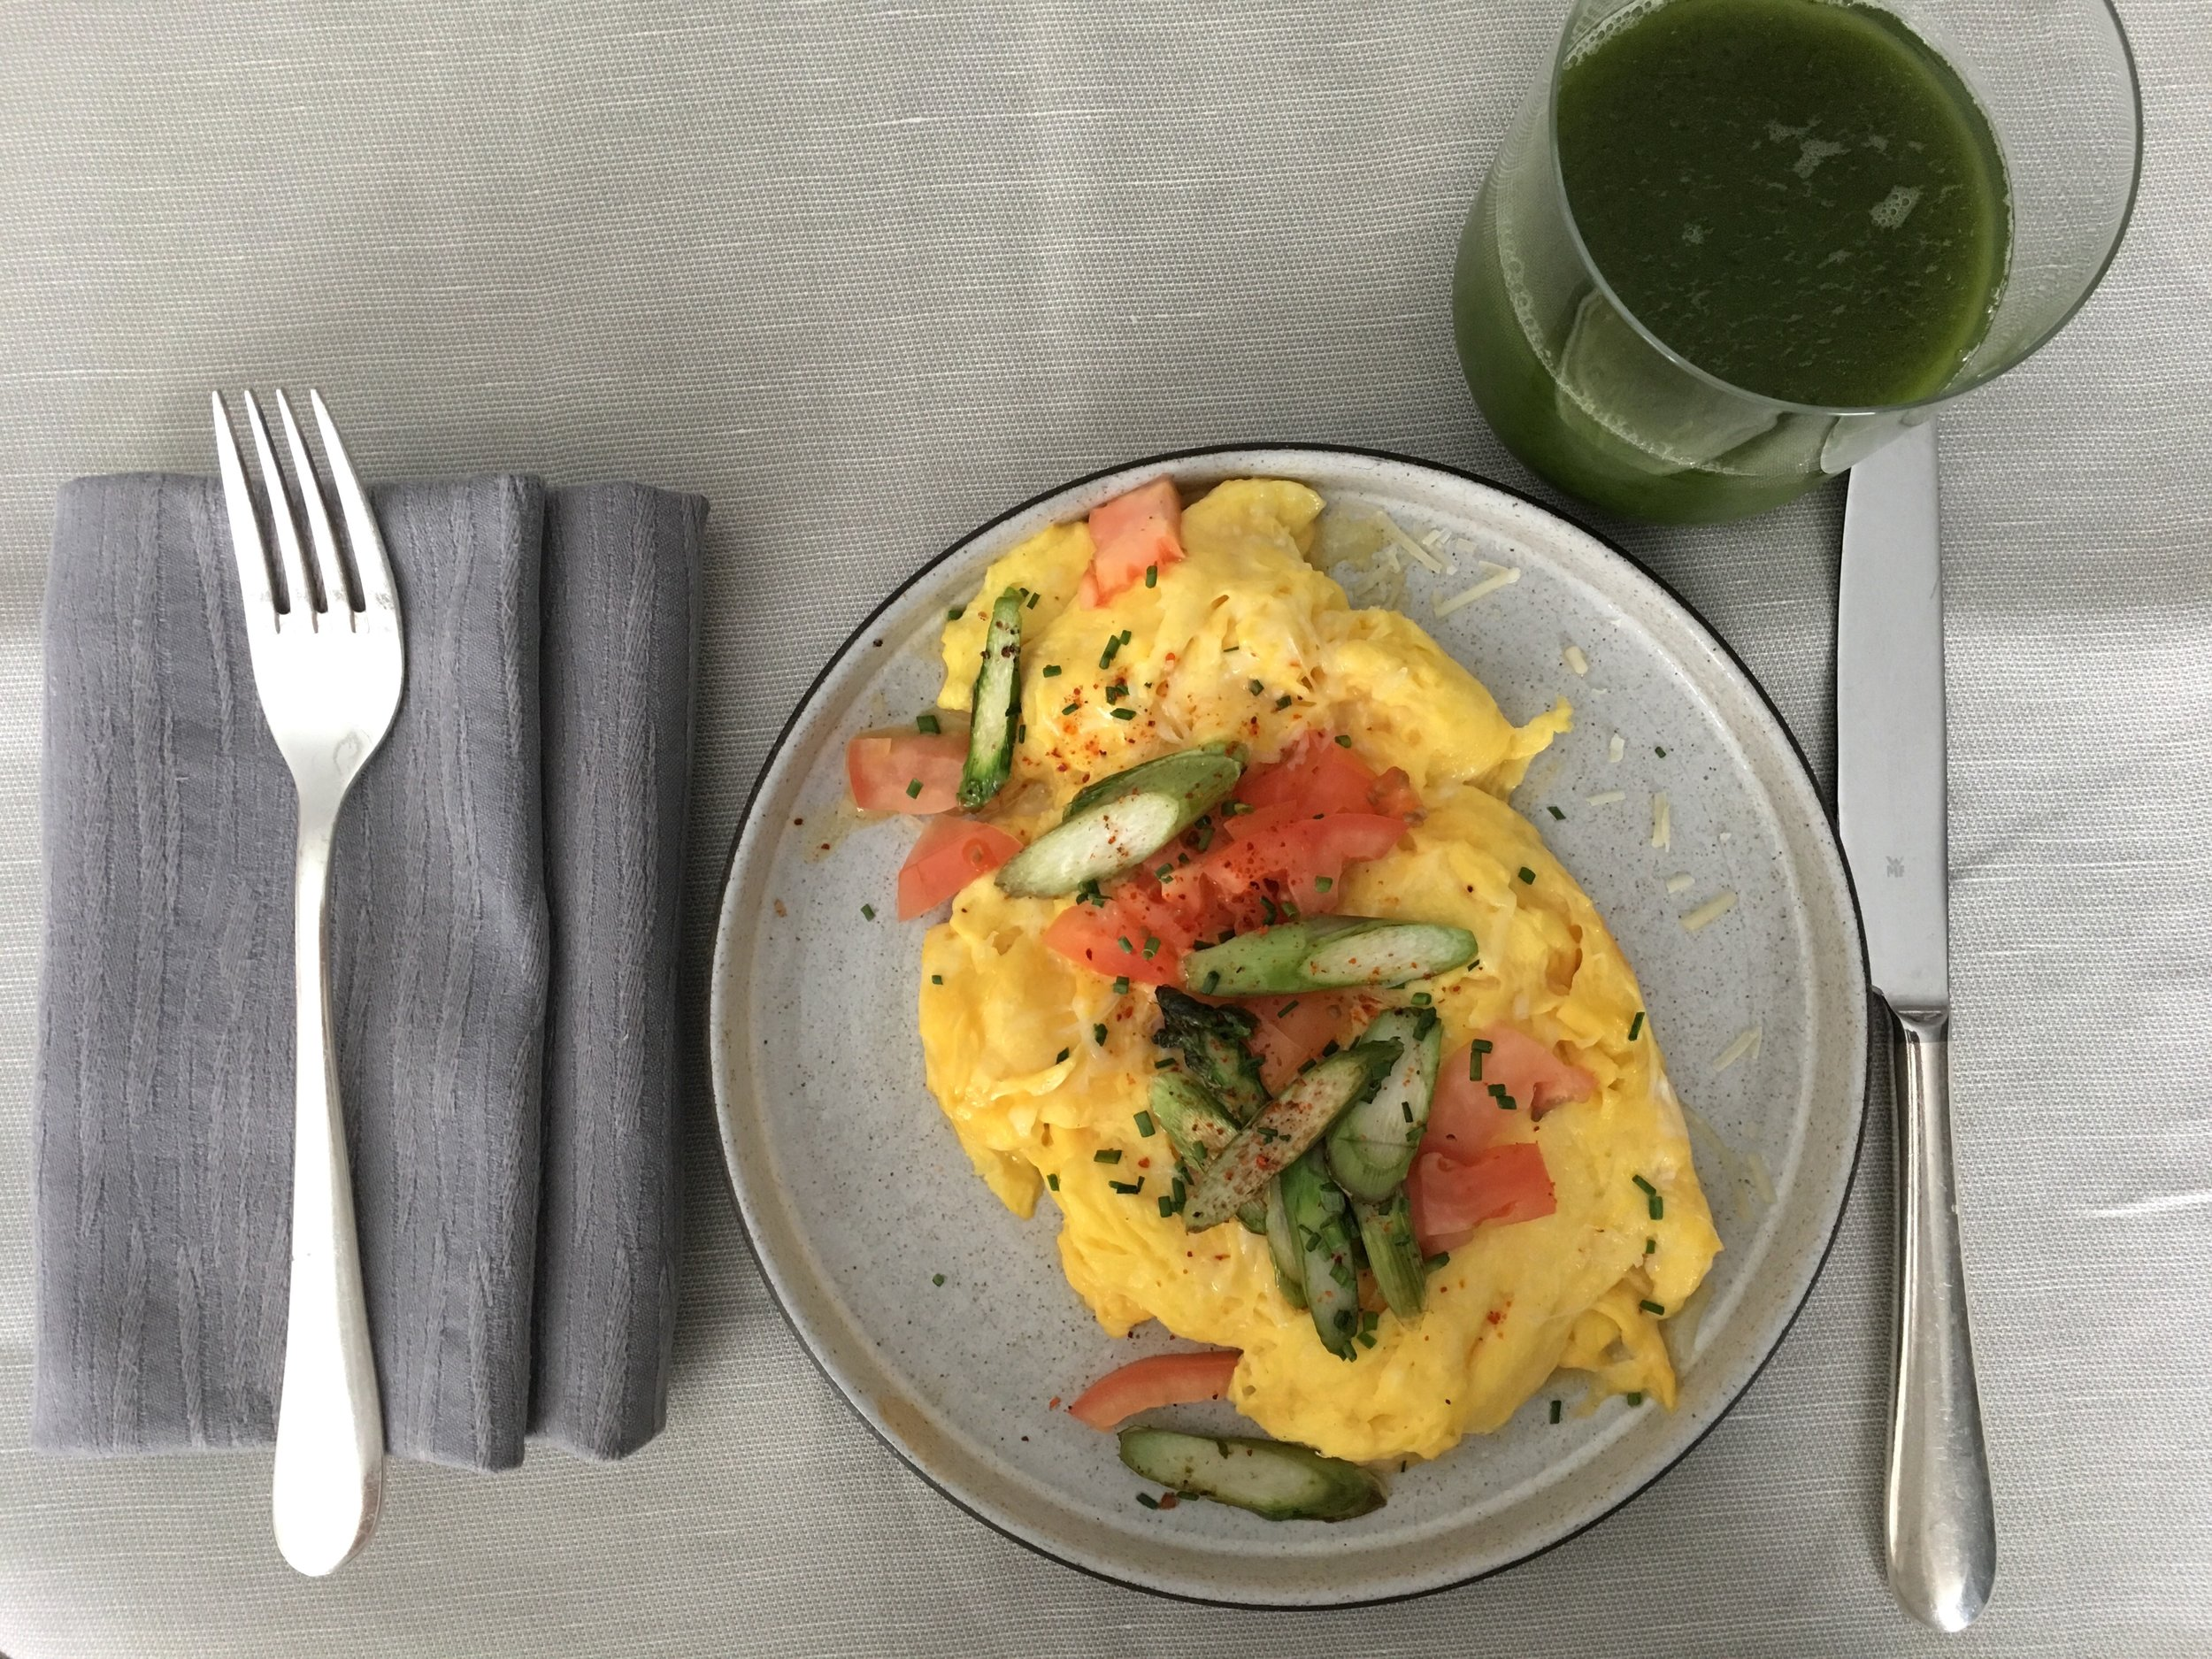 More in-room dining at the Four Seasons Hotel New York Downtown, this time, a asparagus,tomato, and parm scramble.